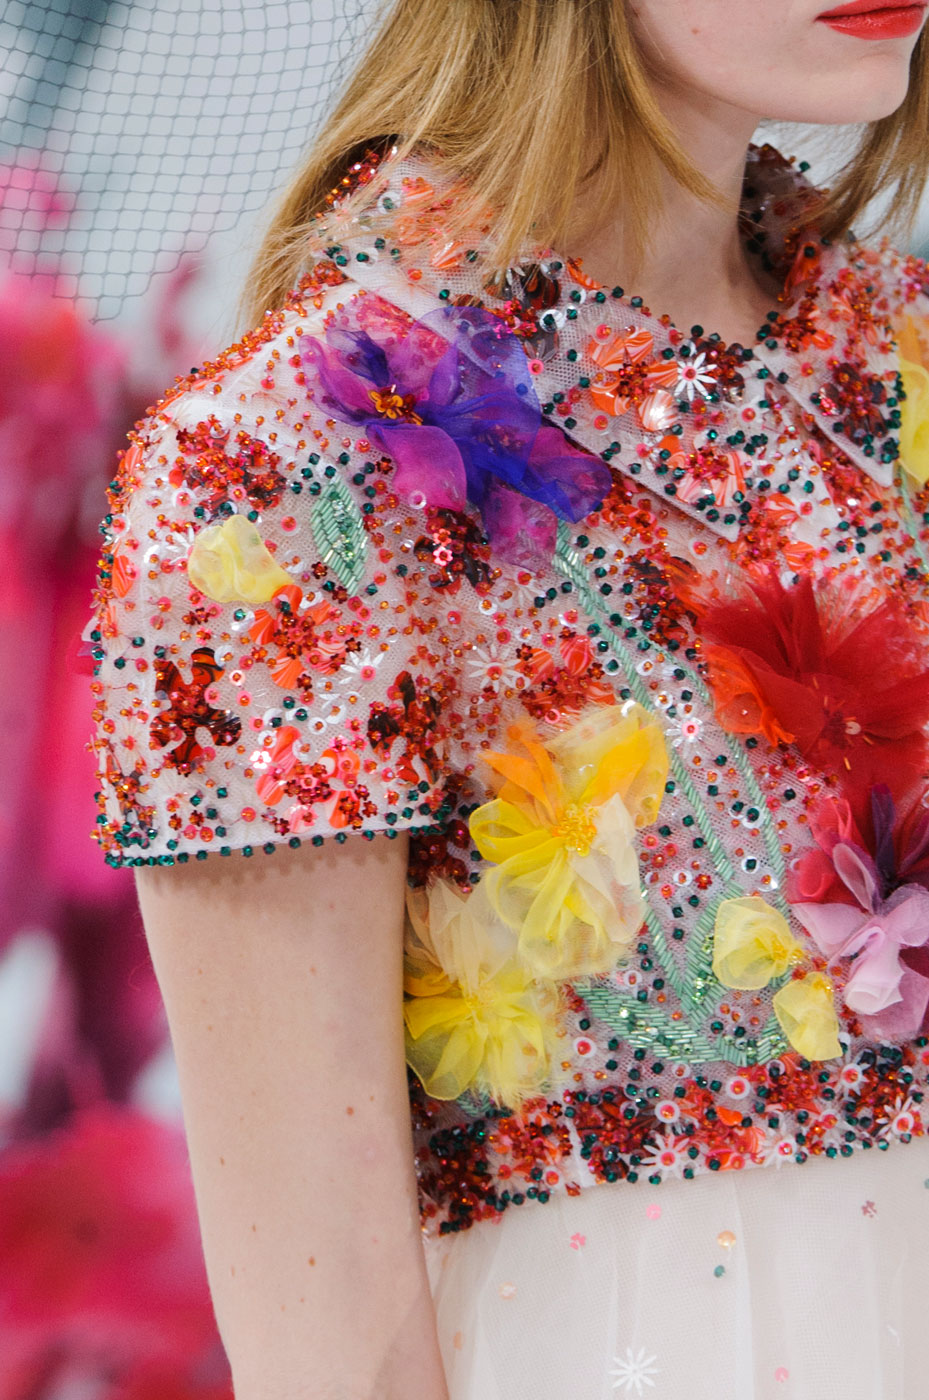 Chanel-fashion-runway-show-close-ups-haute-couture-paris-spring-summer-2015-the-impression-091